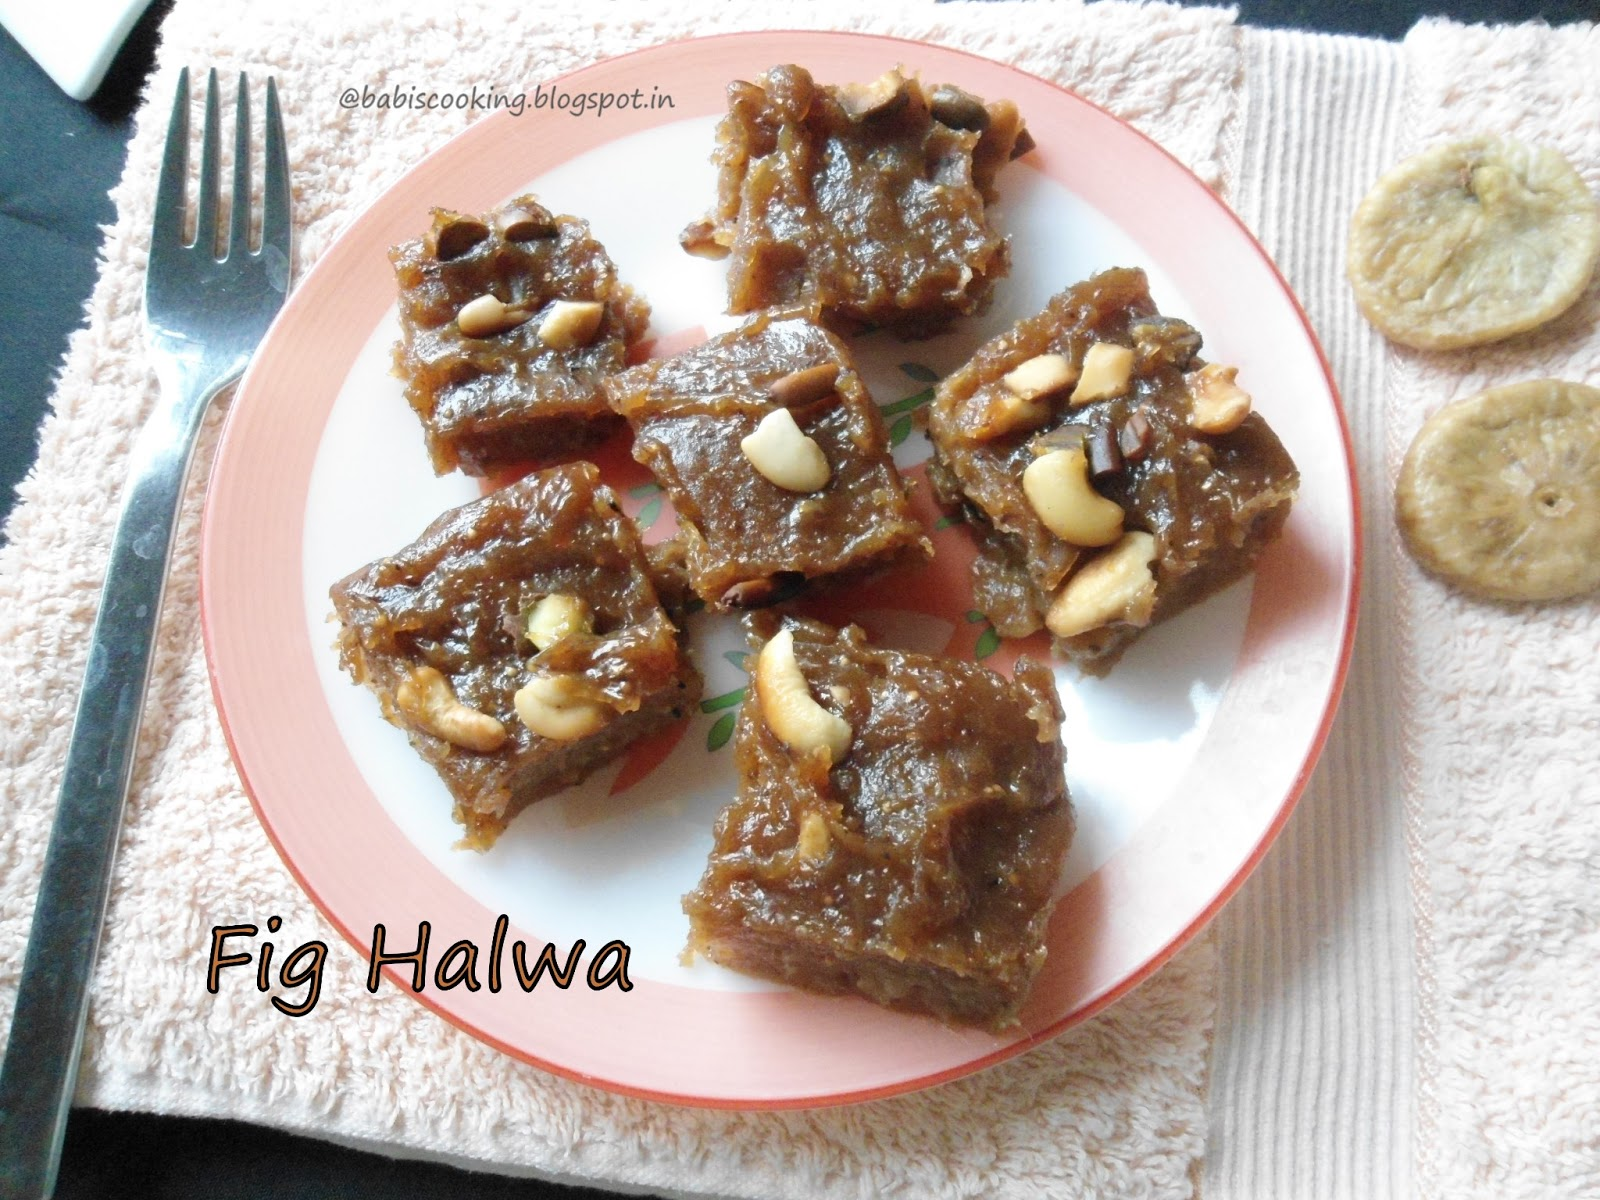 Fig and dates halwa